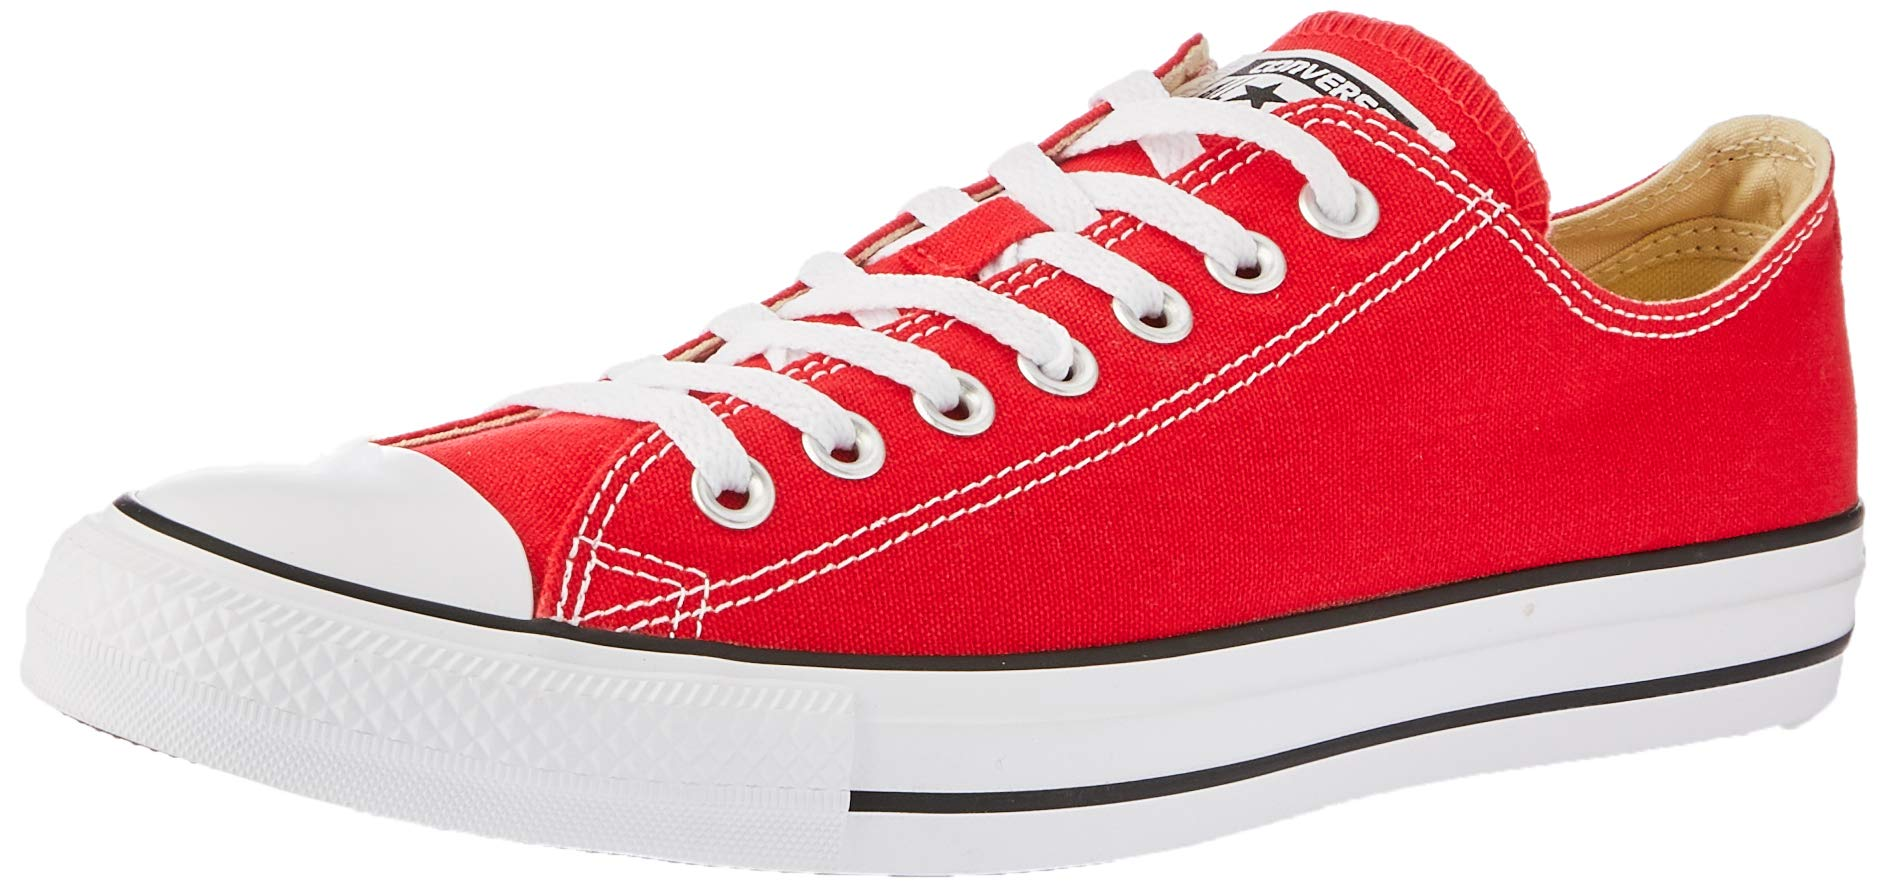 8d8712591adf2 Converse Unisex Chuck Taylor All Star Ox Low Top Red Sneakers - 5 B(M) US  Women / 3 D(M) US Men